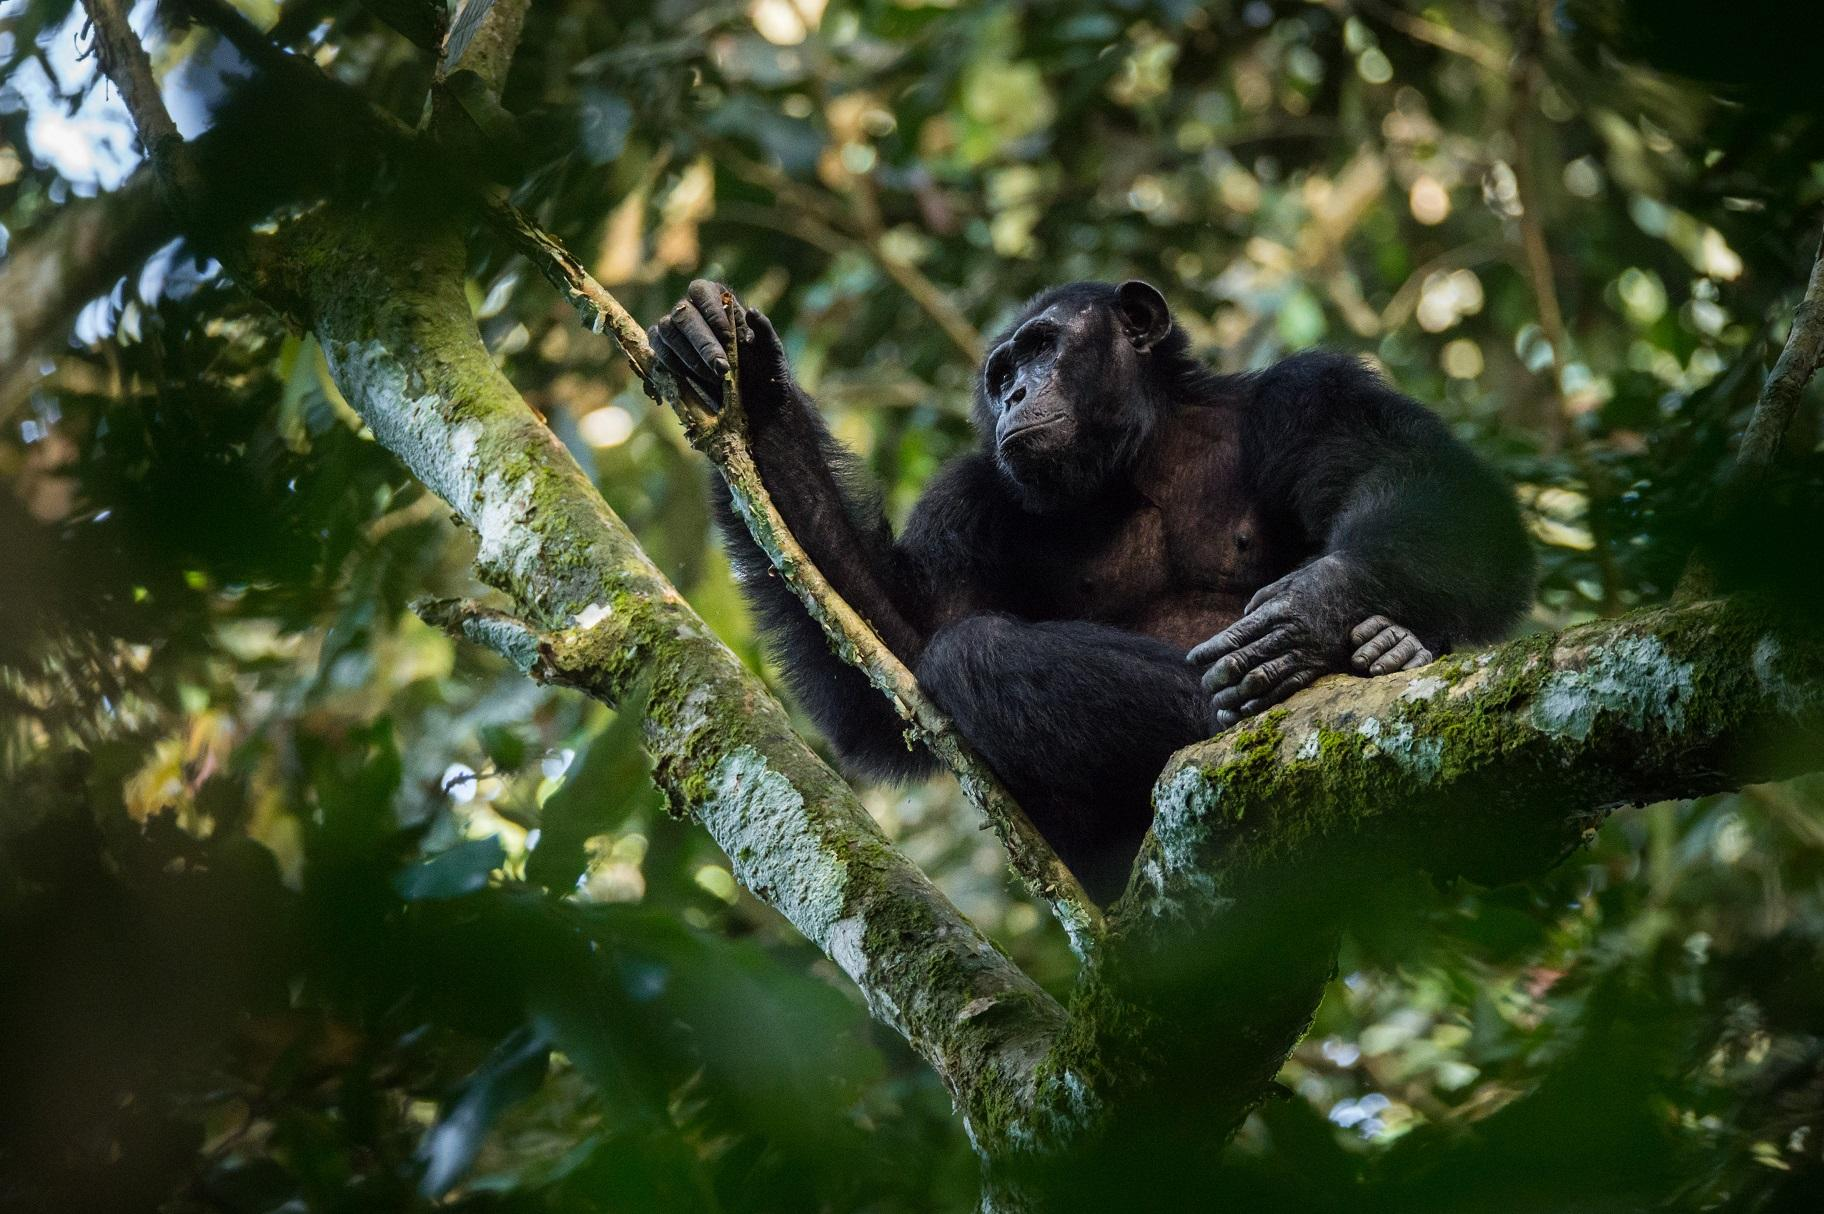 A chimpanzee in the Goualougo Triangle, part of the Nouabale-Ndoki National Park in the Republic of Congo. (Kyle de Nobrega / Wildlife Conservation Society)